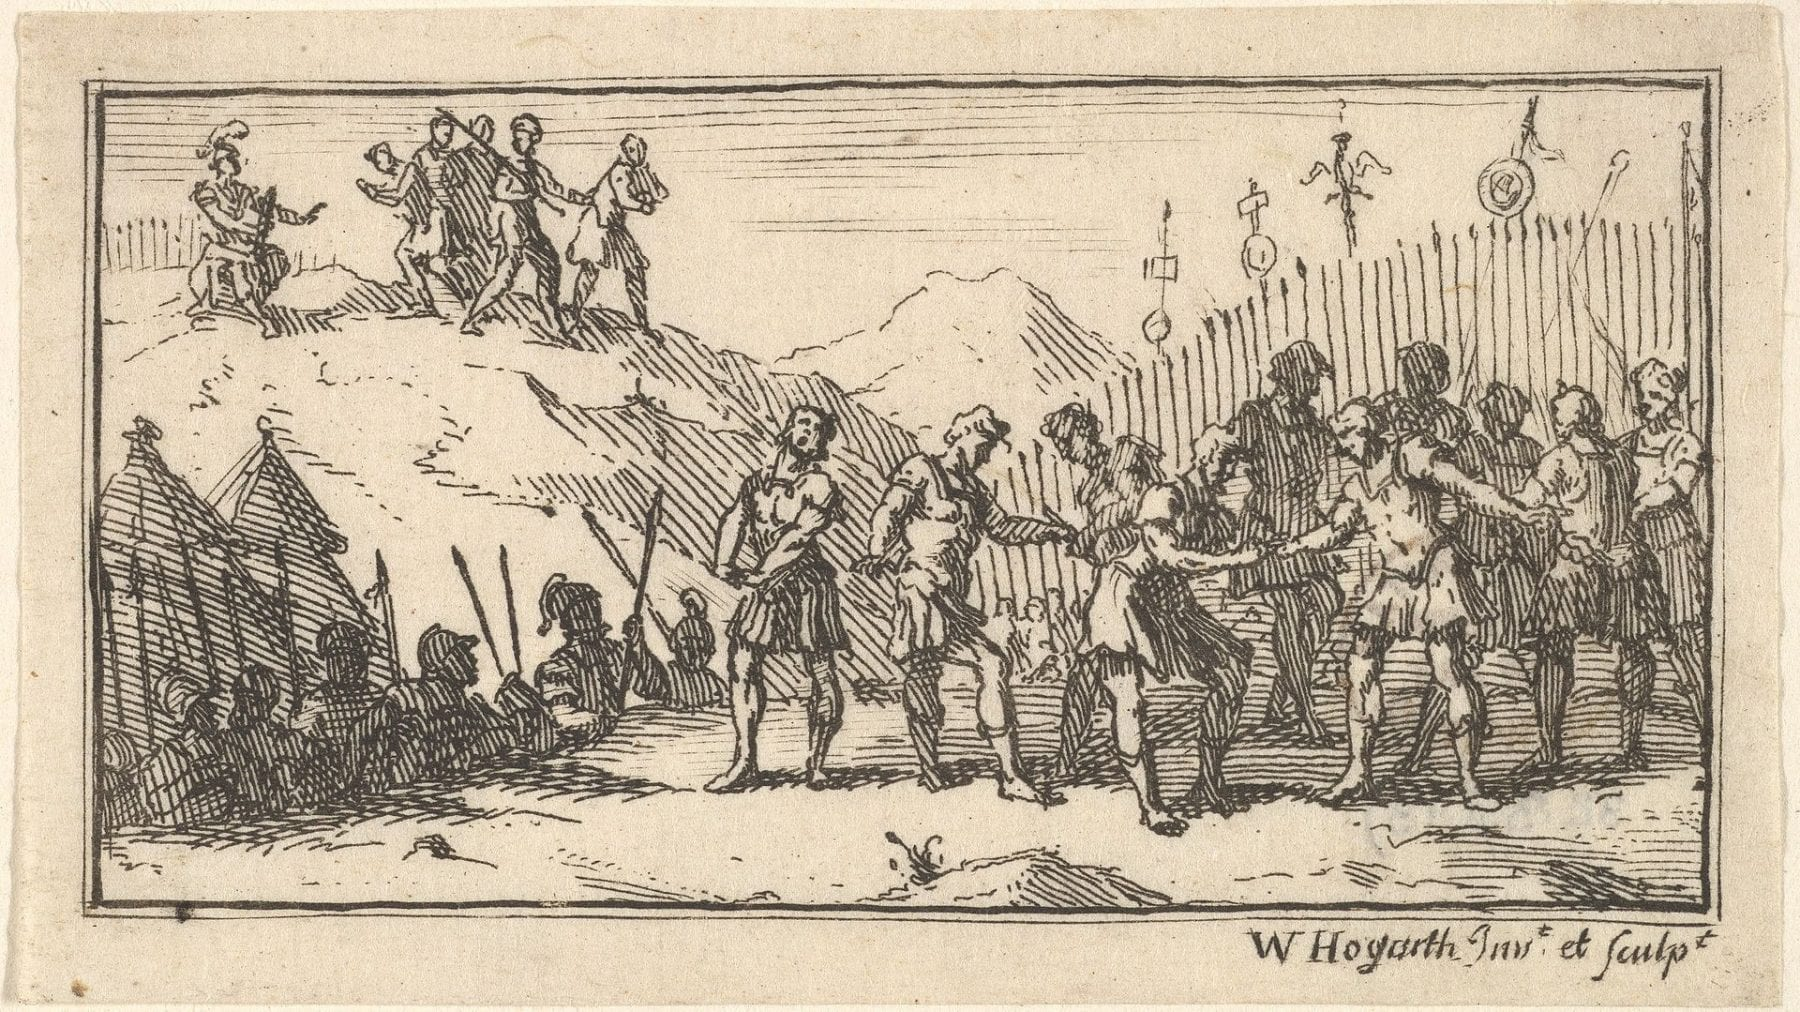 Etching from Beaver's Roman Military Punishments, Chapter 4, 1725 called Decimation presenting the Roman punishment.